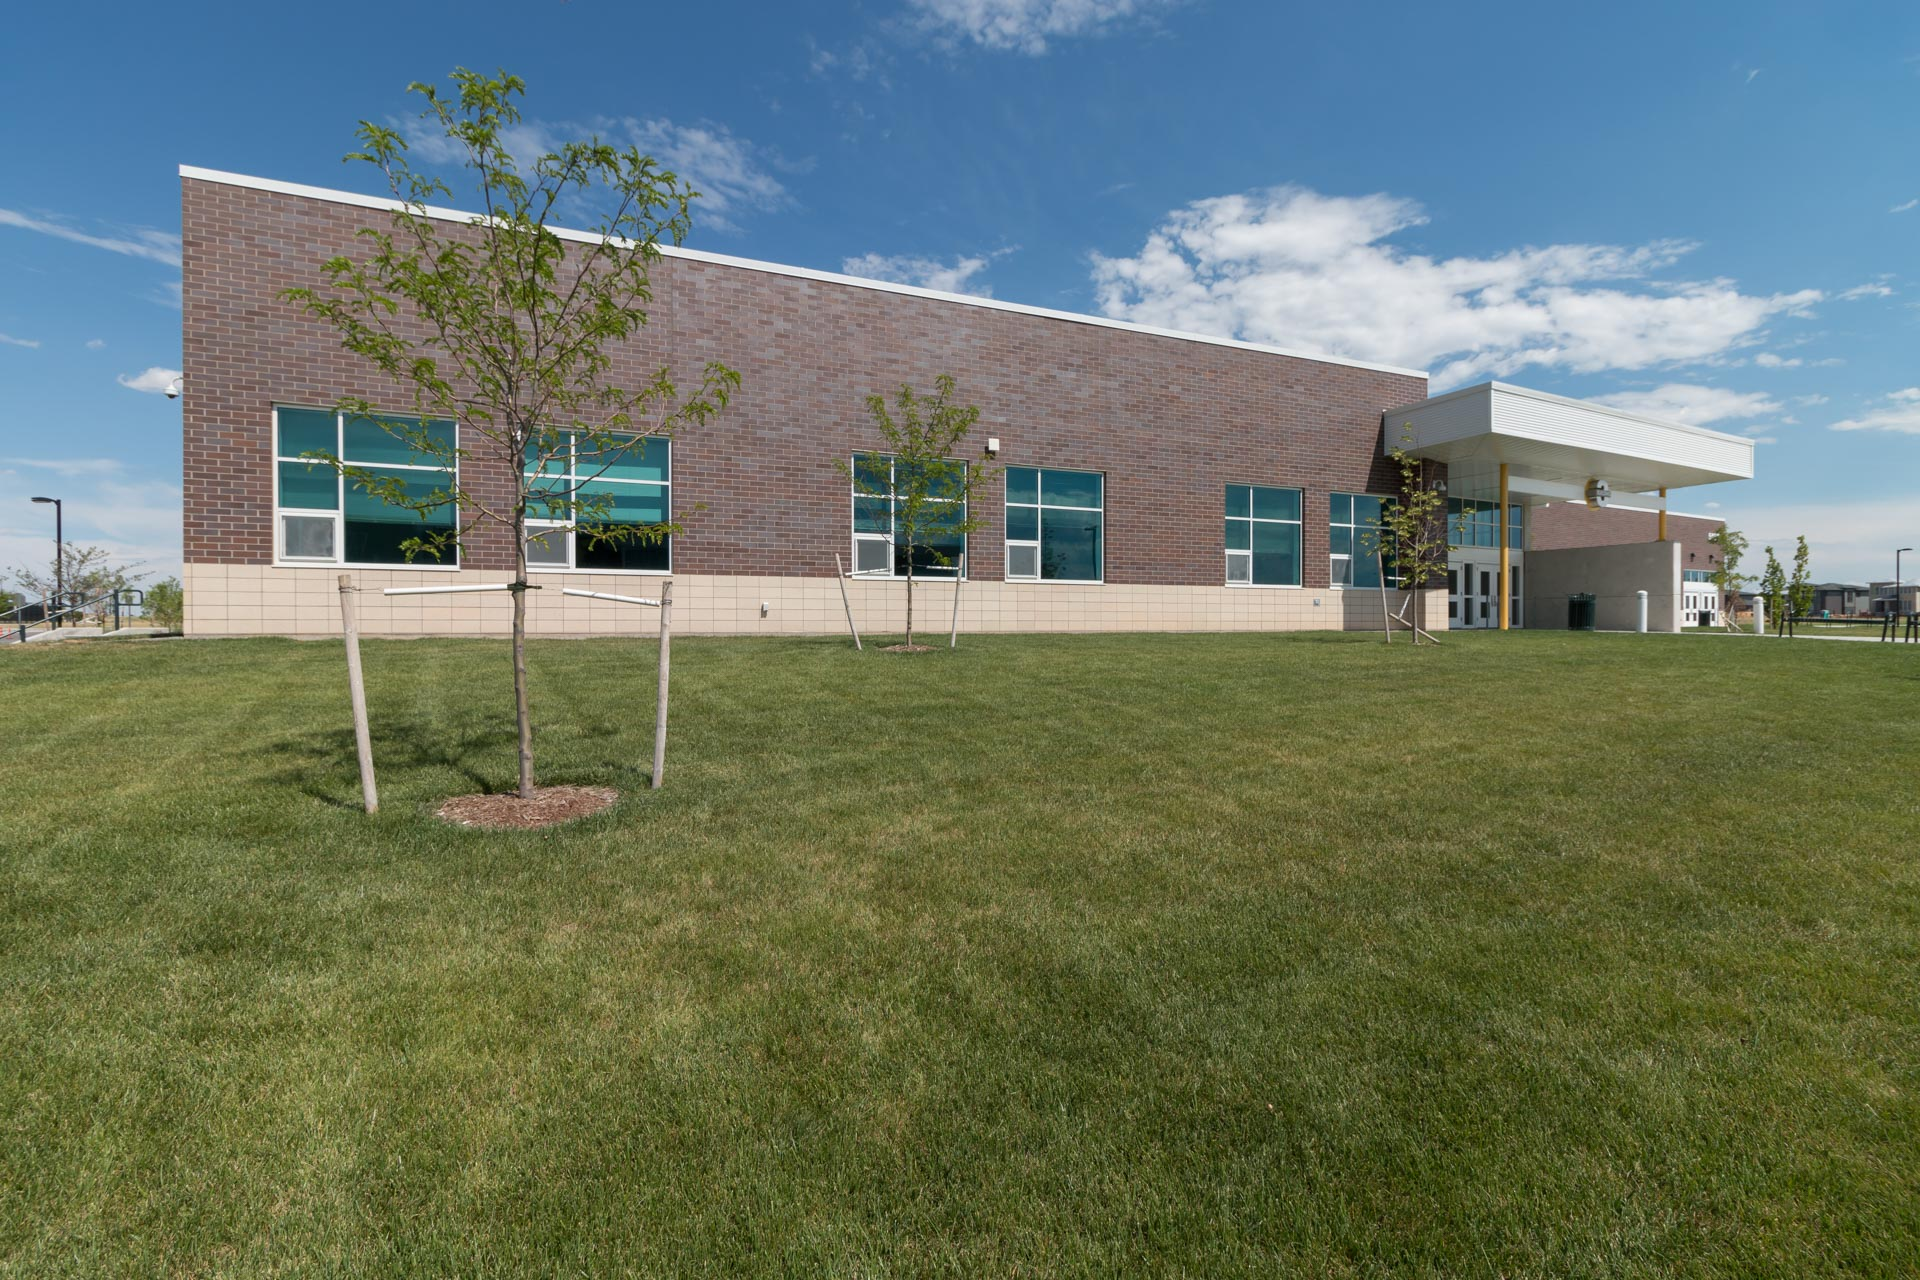 Northfield High School in Stapleton is the newest addition to area schools.